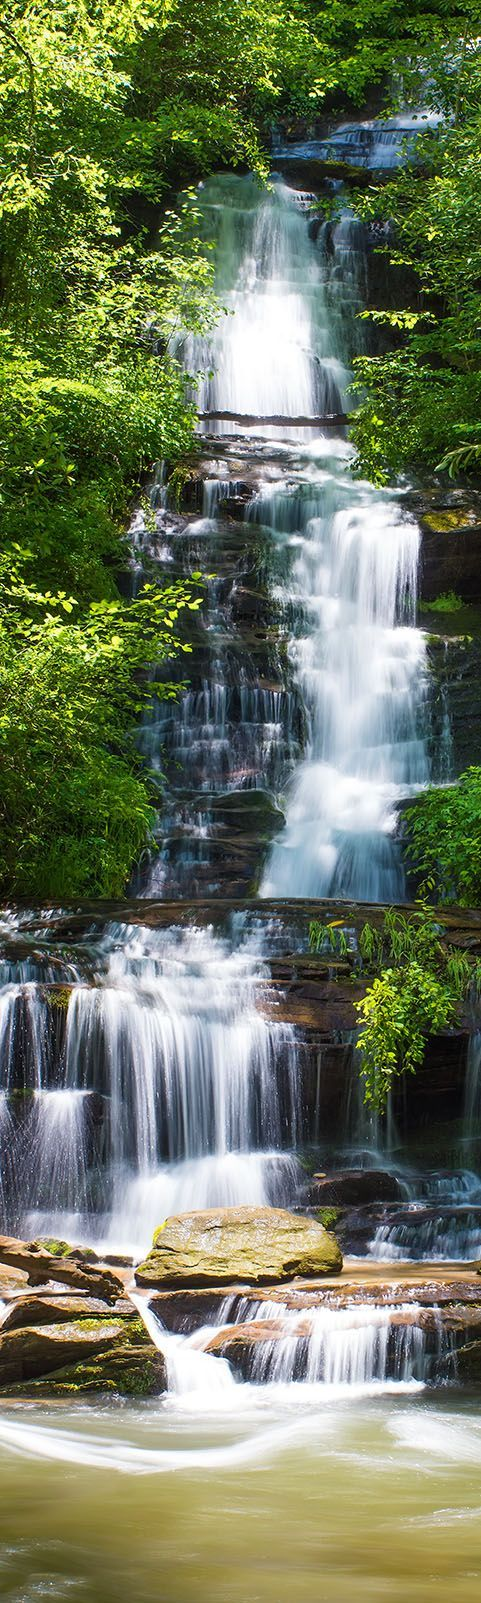 nice The Great Smoky Mountains National Park is full of beautiful streams and majesti...